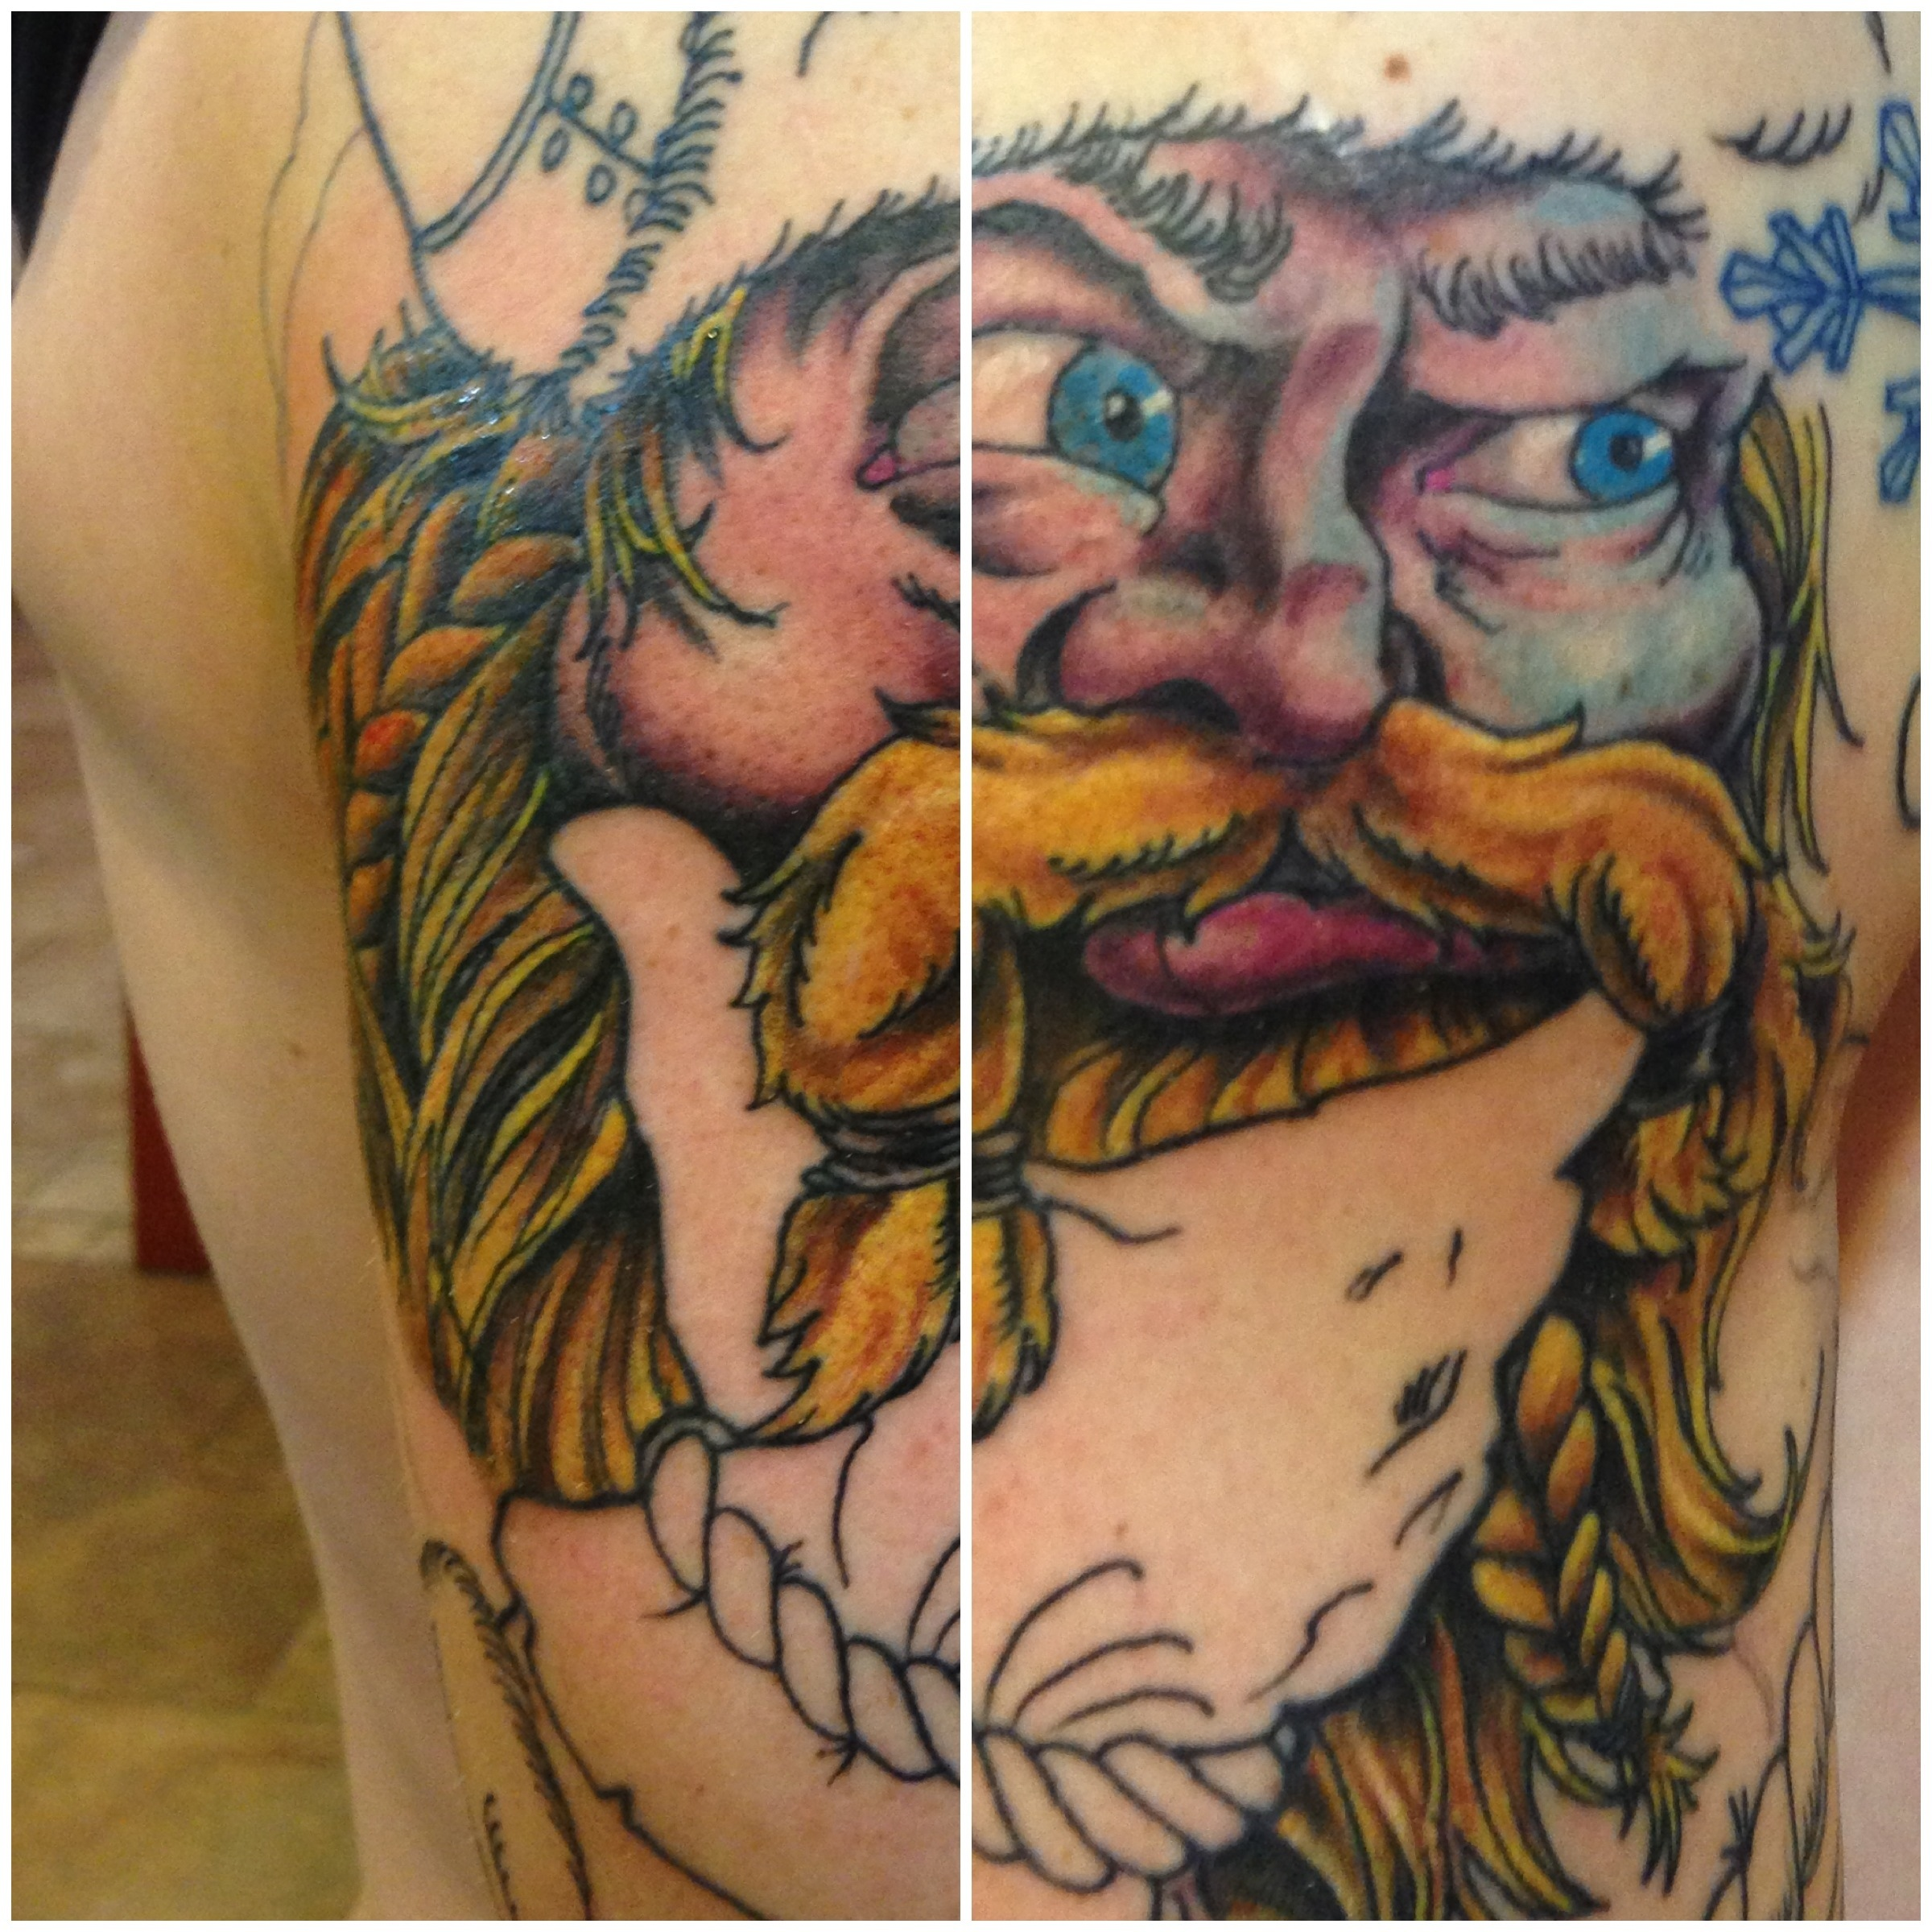 Ullr chagotattoos for Tattoo shops anderson indiana